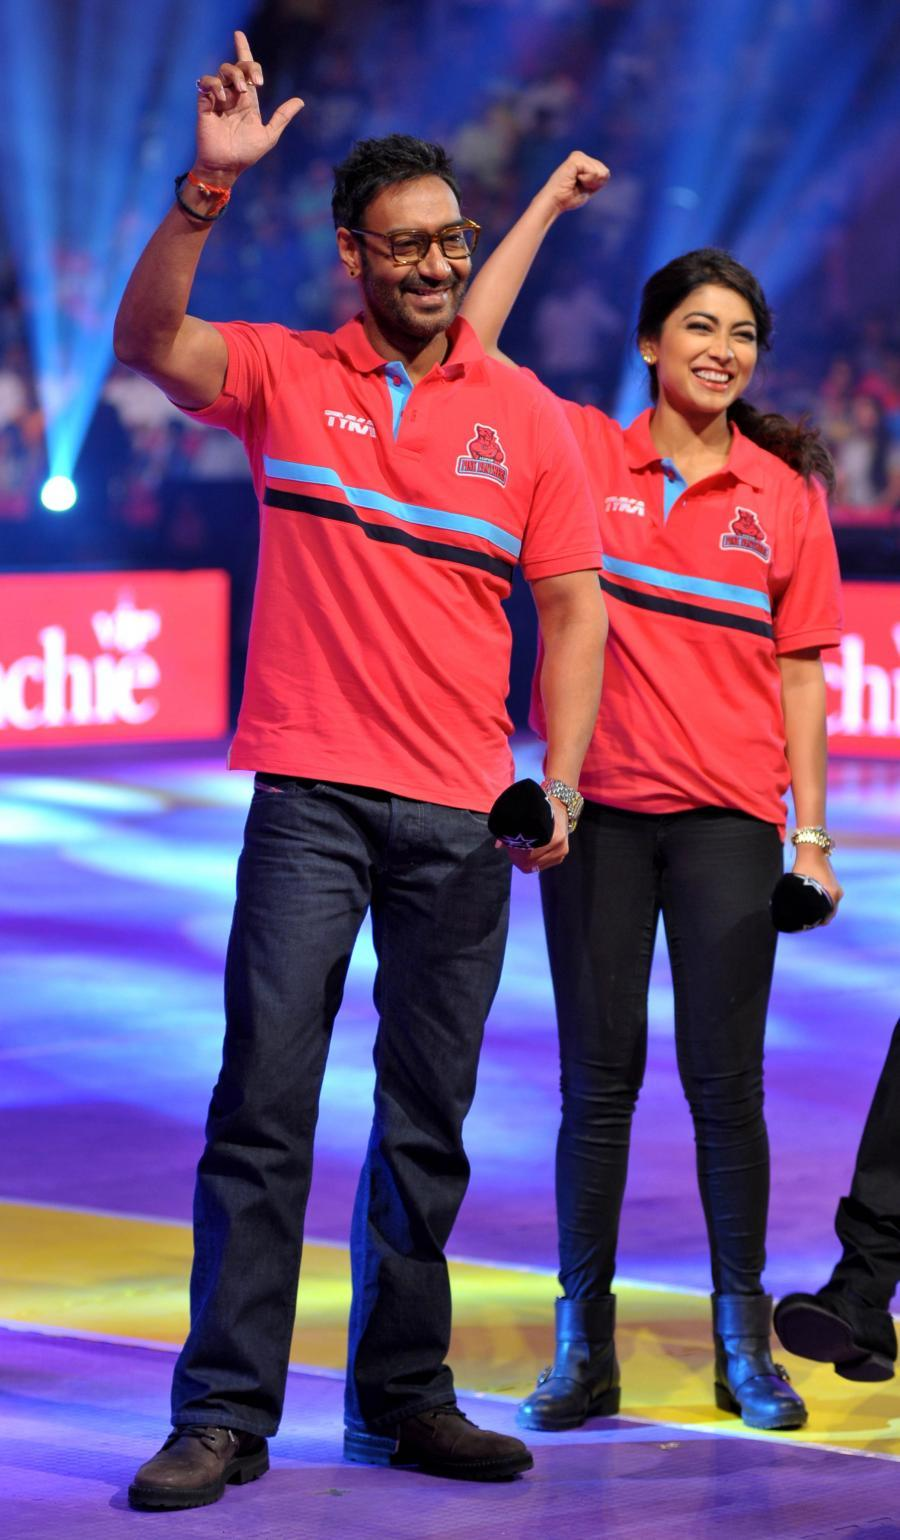 Ajay Devgan & Shriya Saran at Pro Kabaddi League in Jaipur